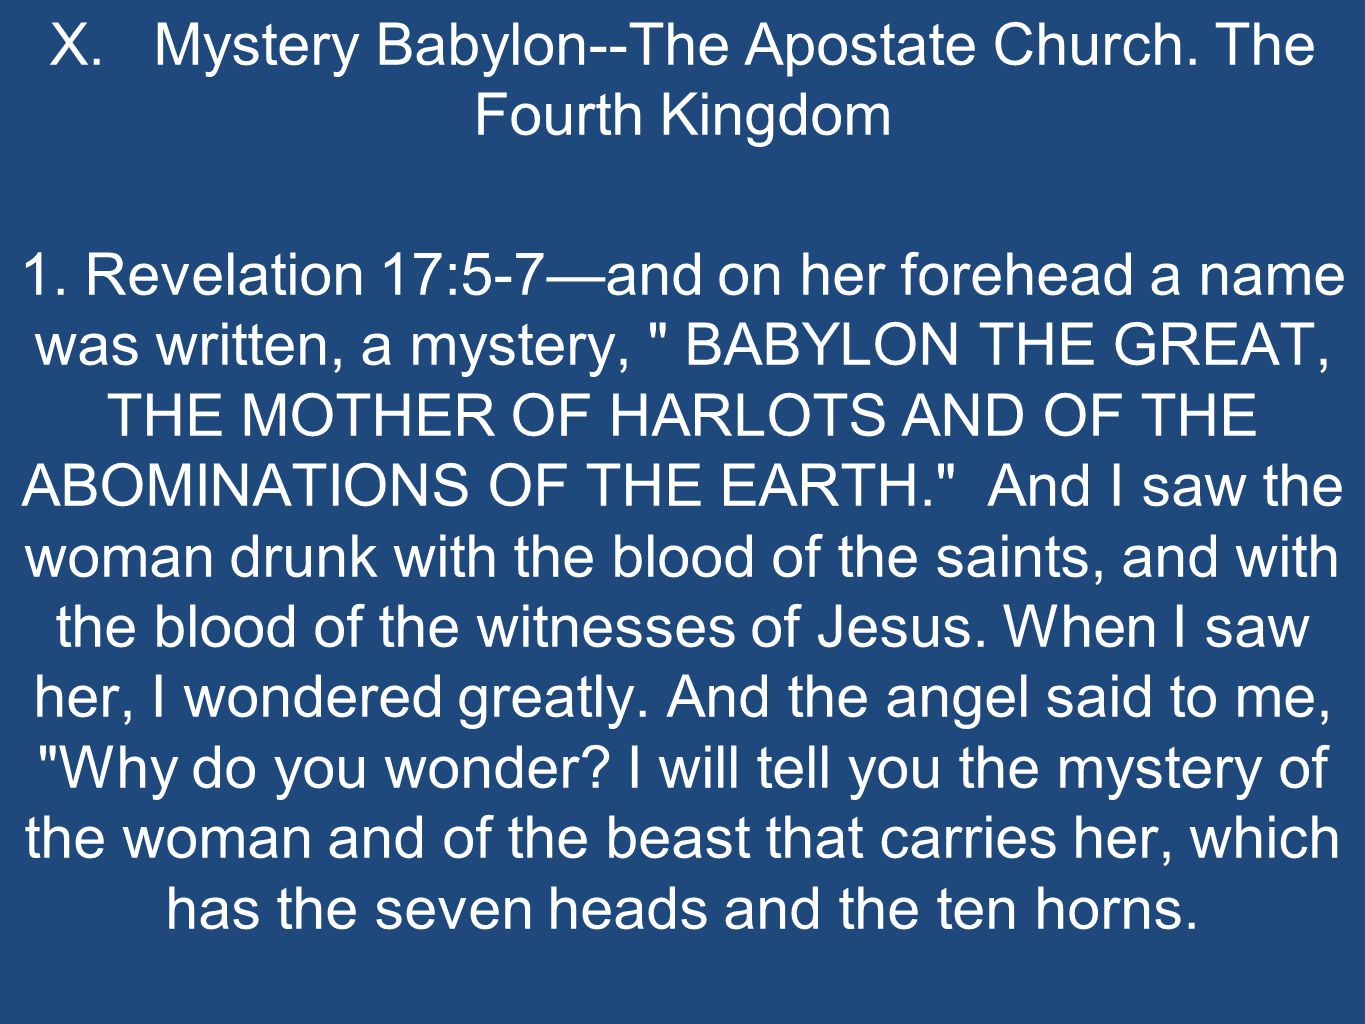 X. Mystery Babylon--The Apostate Church. The Fourth Kingdom 1.